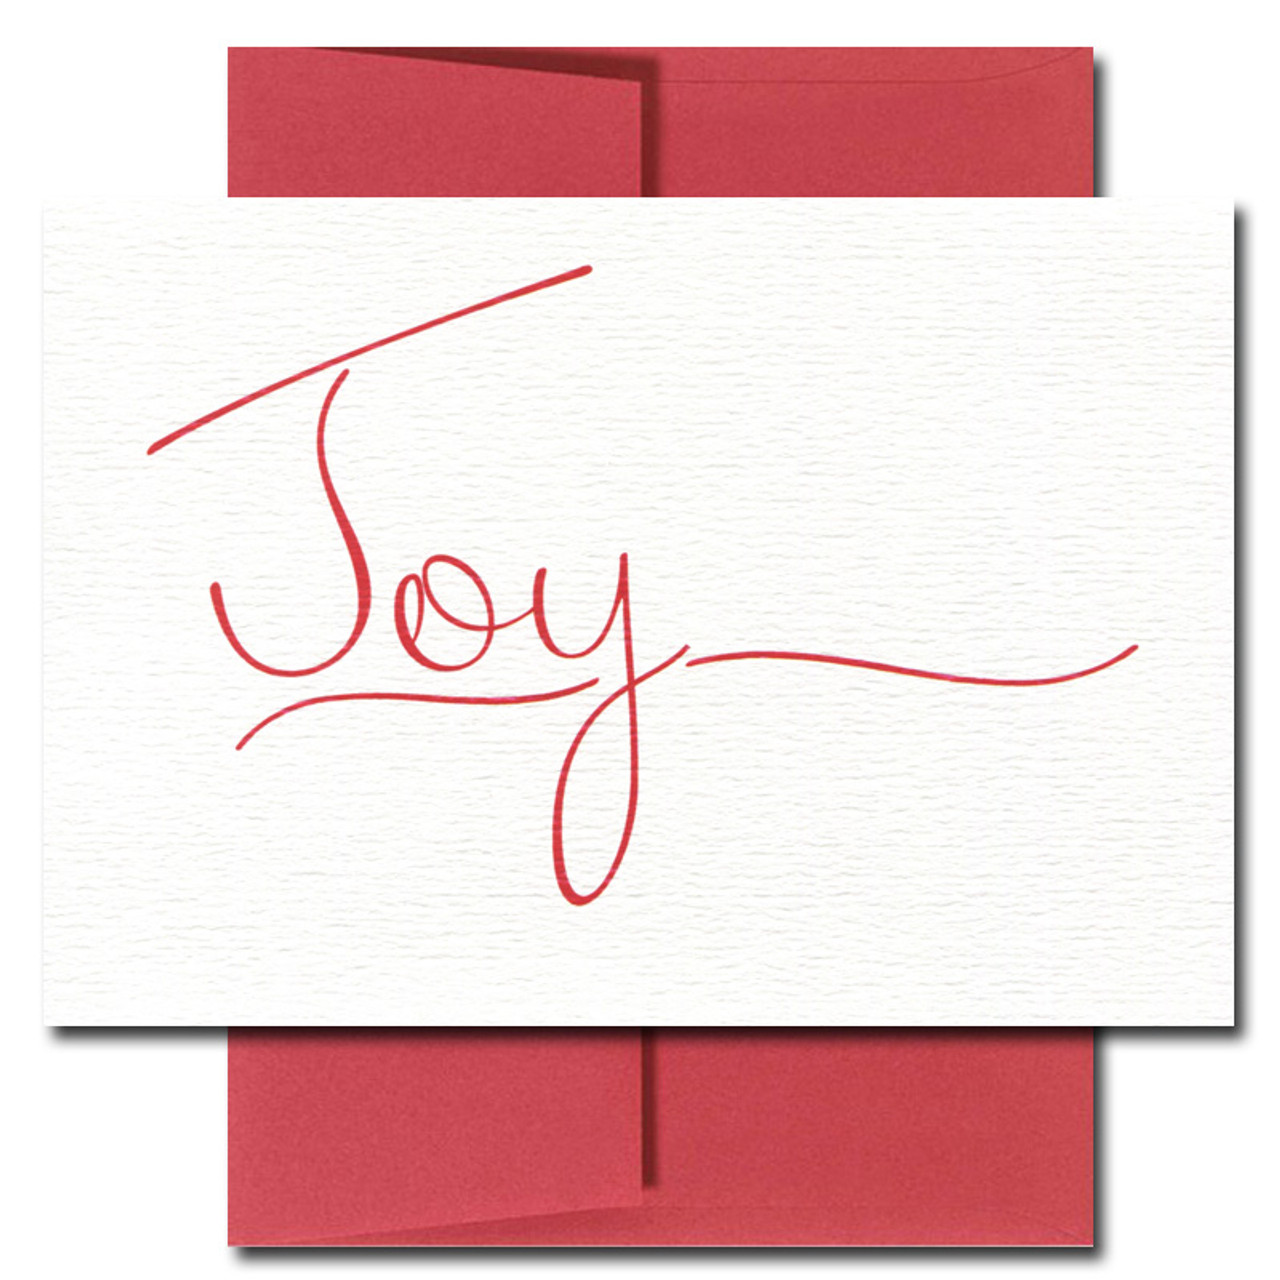 Joy holiday card features bright red script printed on white textured cardstock